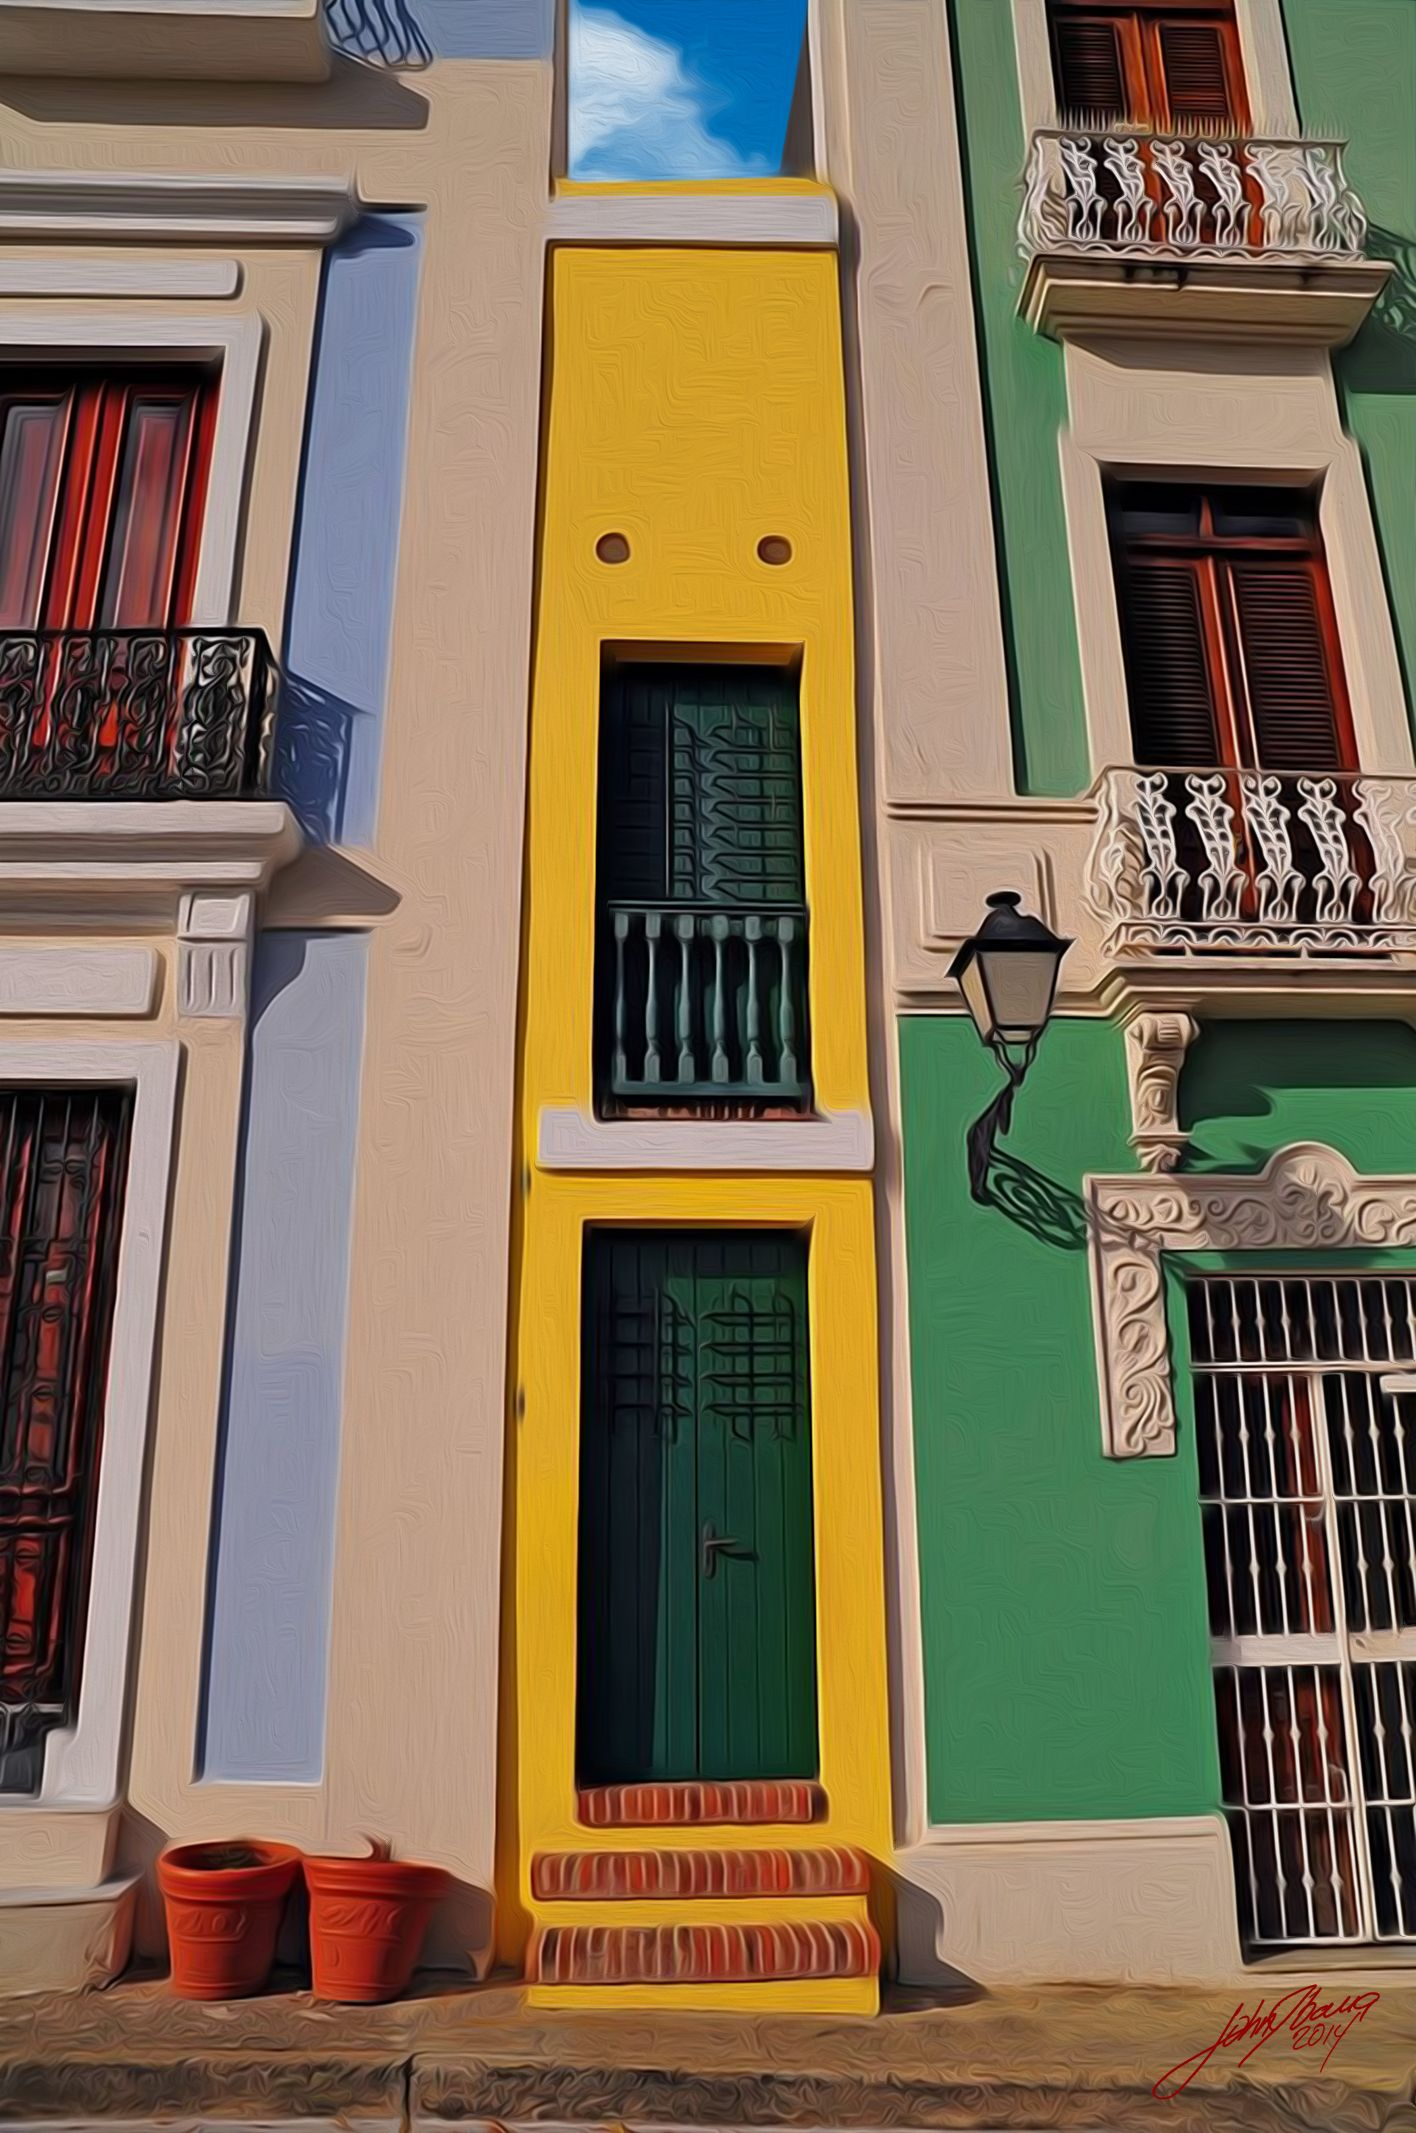 This is the narrow house in san juan puerto rico the exterior measure 5 4 5 feet 4 inches wide but the inside walls measures only 5 feet wide